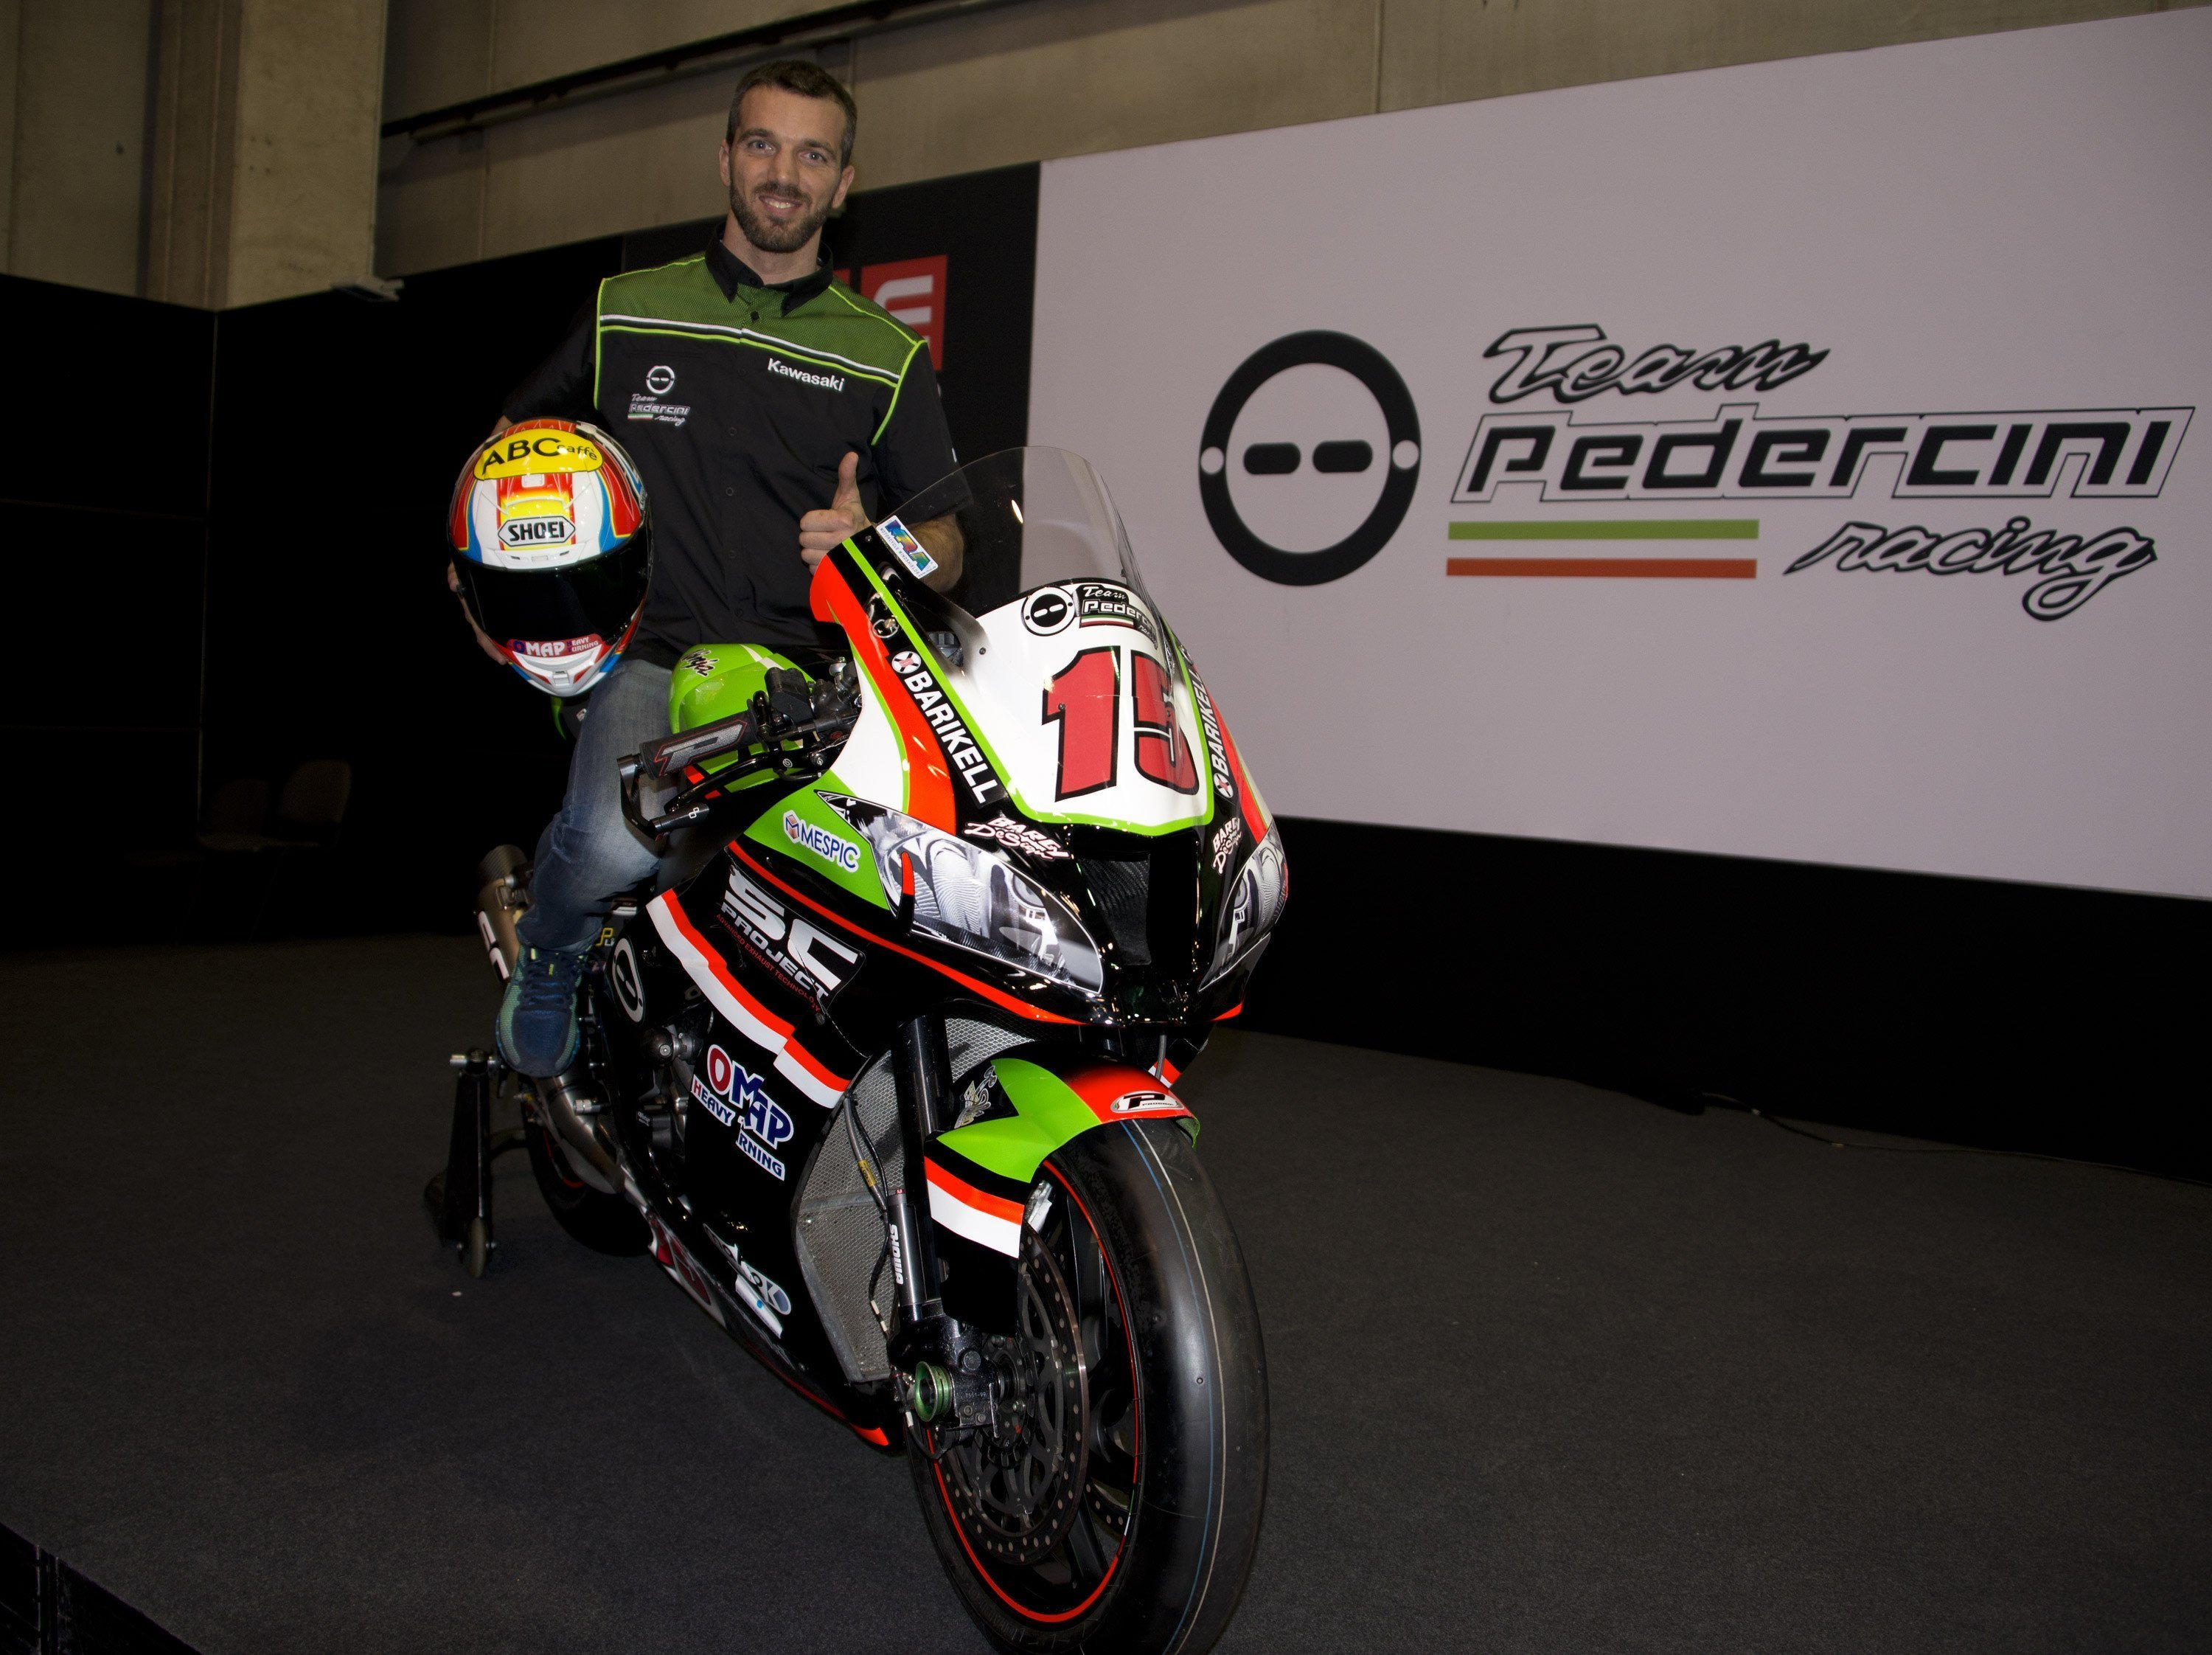 Alex e Pedercini Racing SC-Project si presentano a Motor Bike Expo